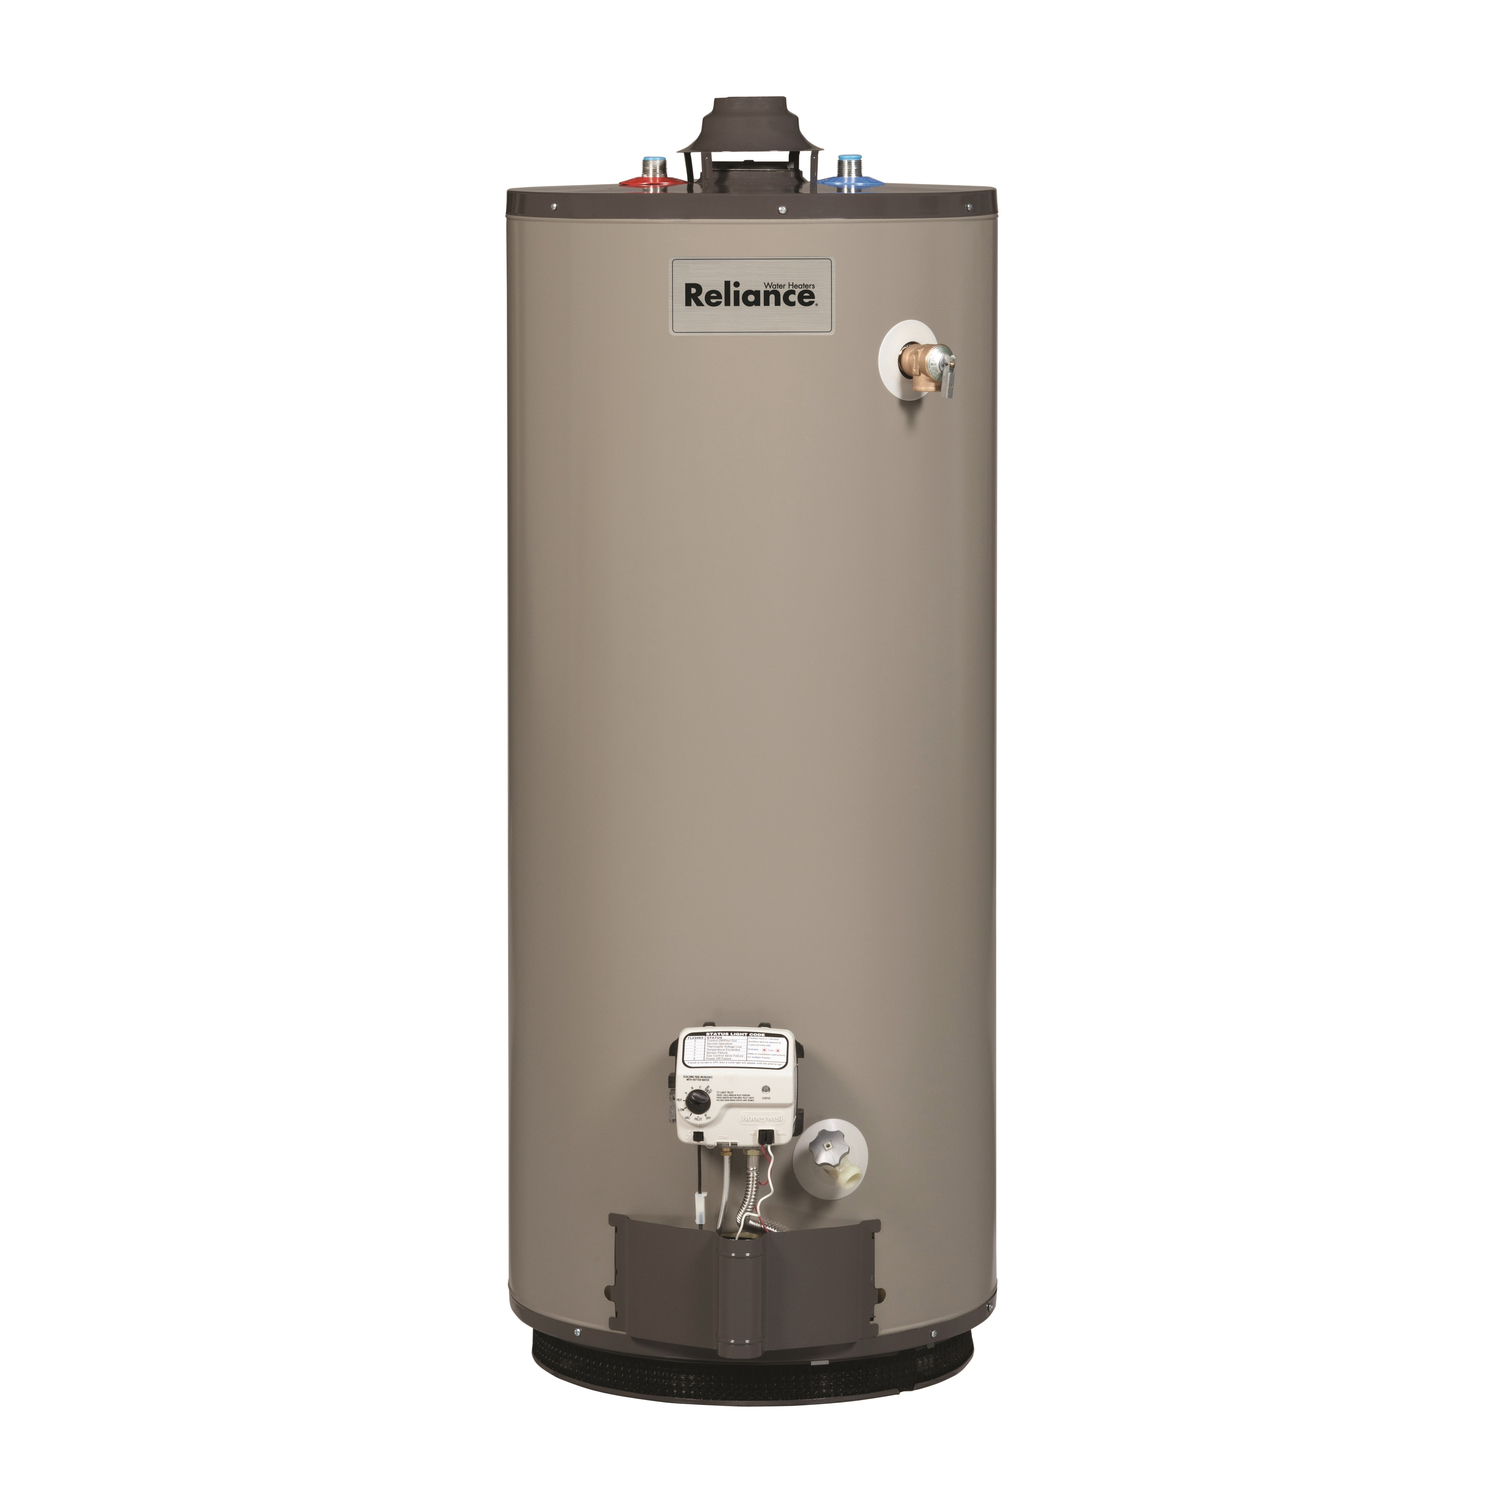 Reliance  Natural Gas  Water Heater  51-1/2 in. H x 22 in. L x 22 in. W 40 gal.